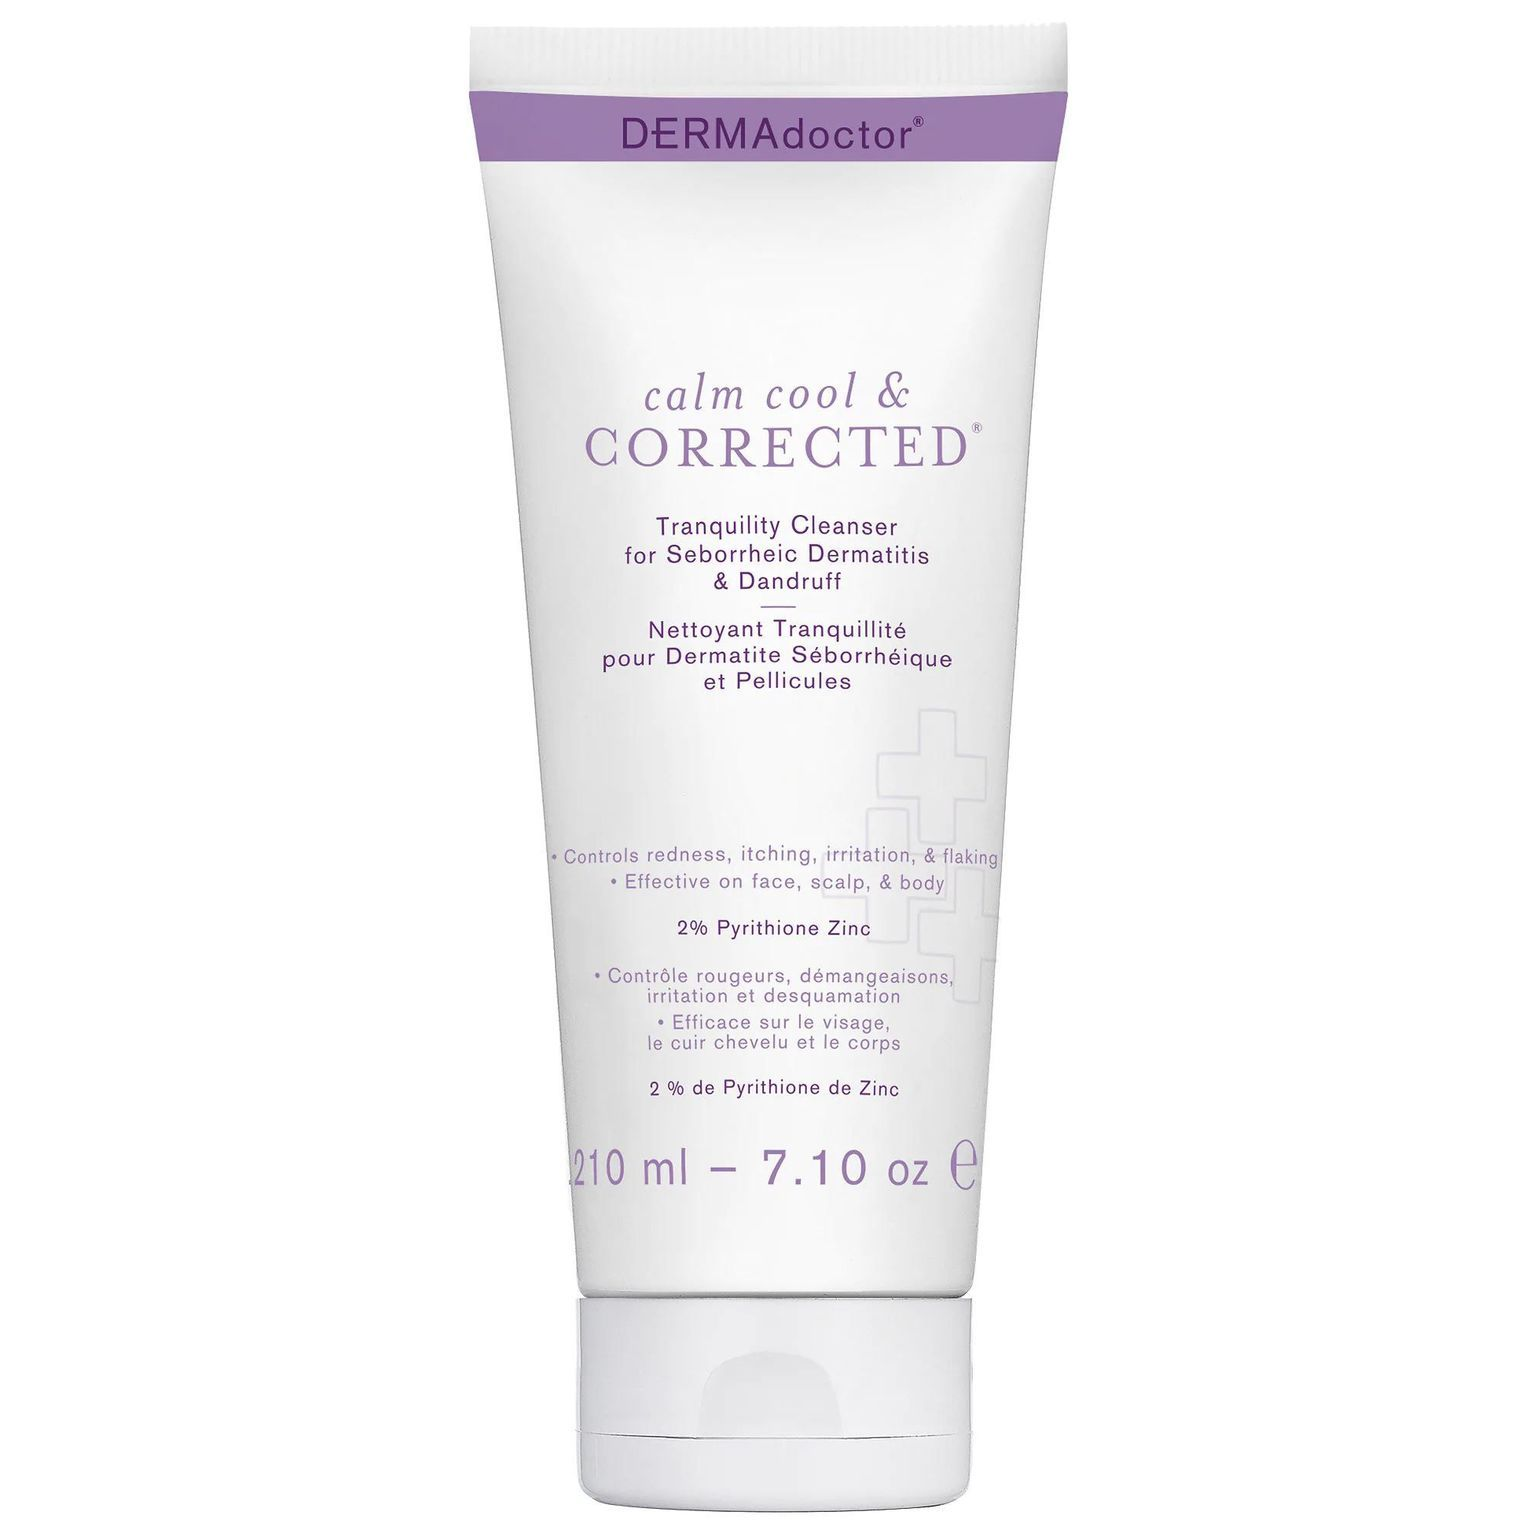 Calm Cool & Corrected Tranquility Cleanser for Seborrheic Dermatitis & Dandruff